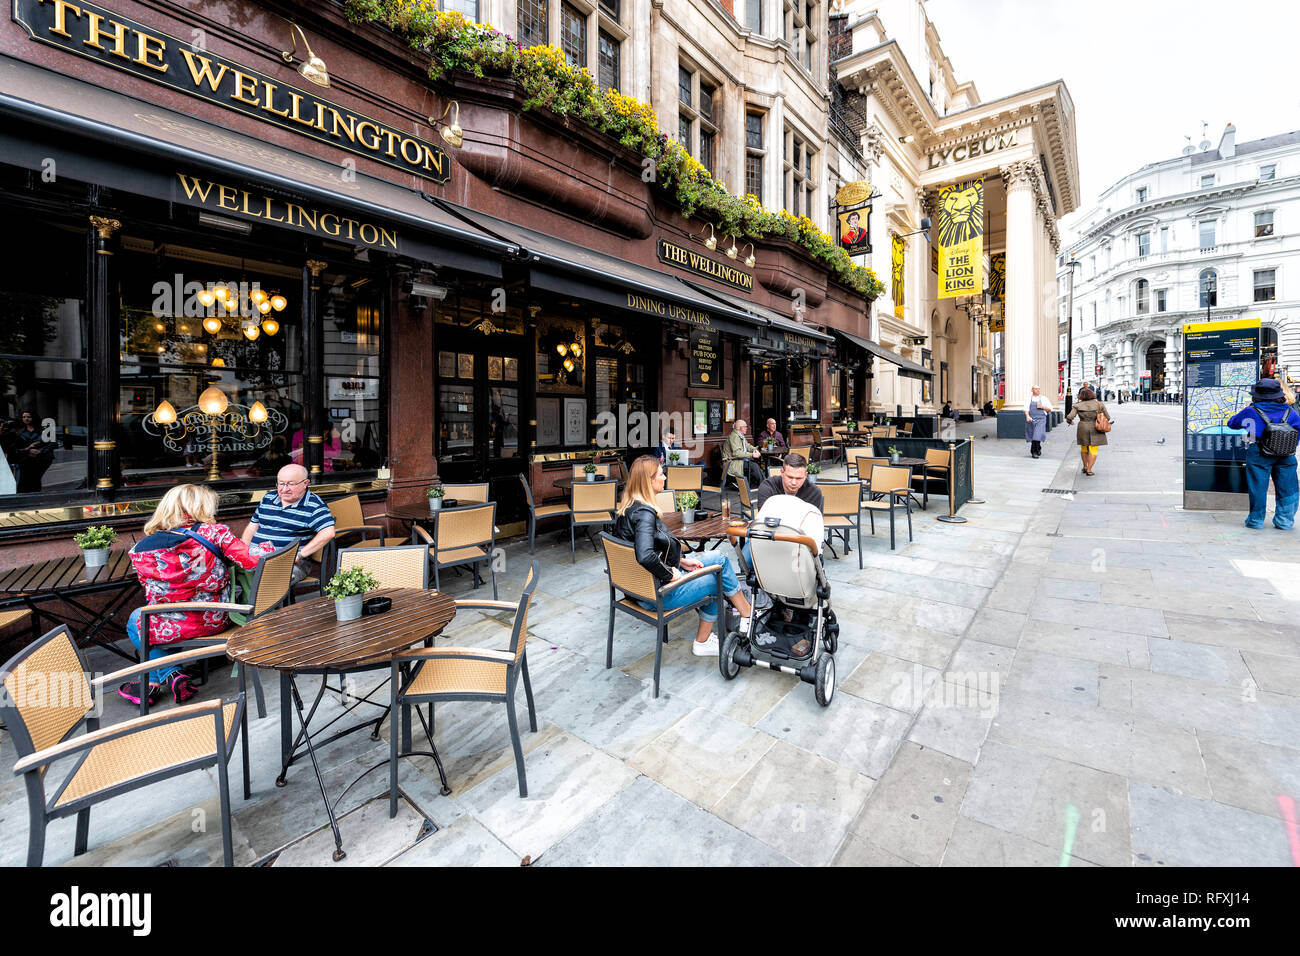 Covent Garden Strand Stock Photos   Covent Garden Strand Stock ... 2932541fa